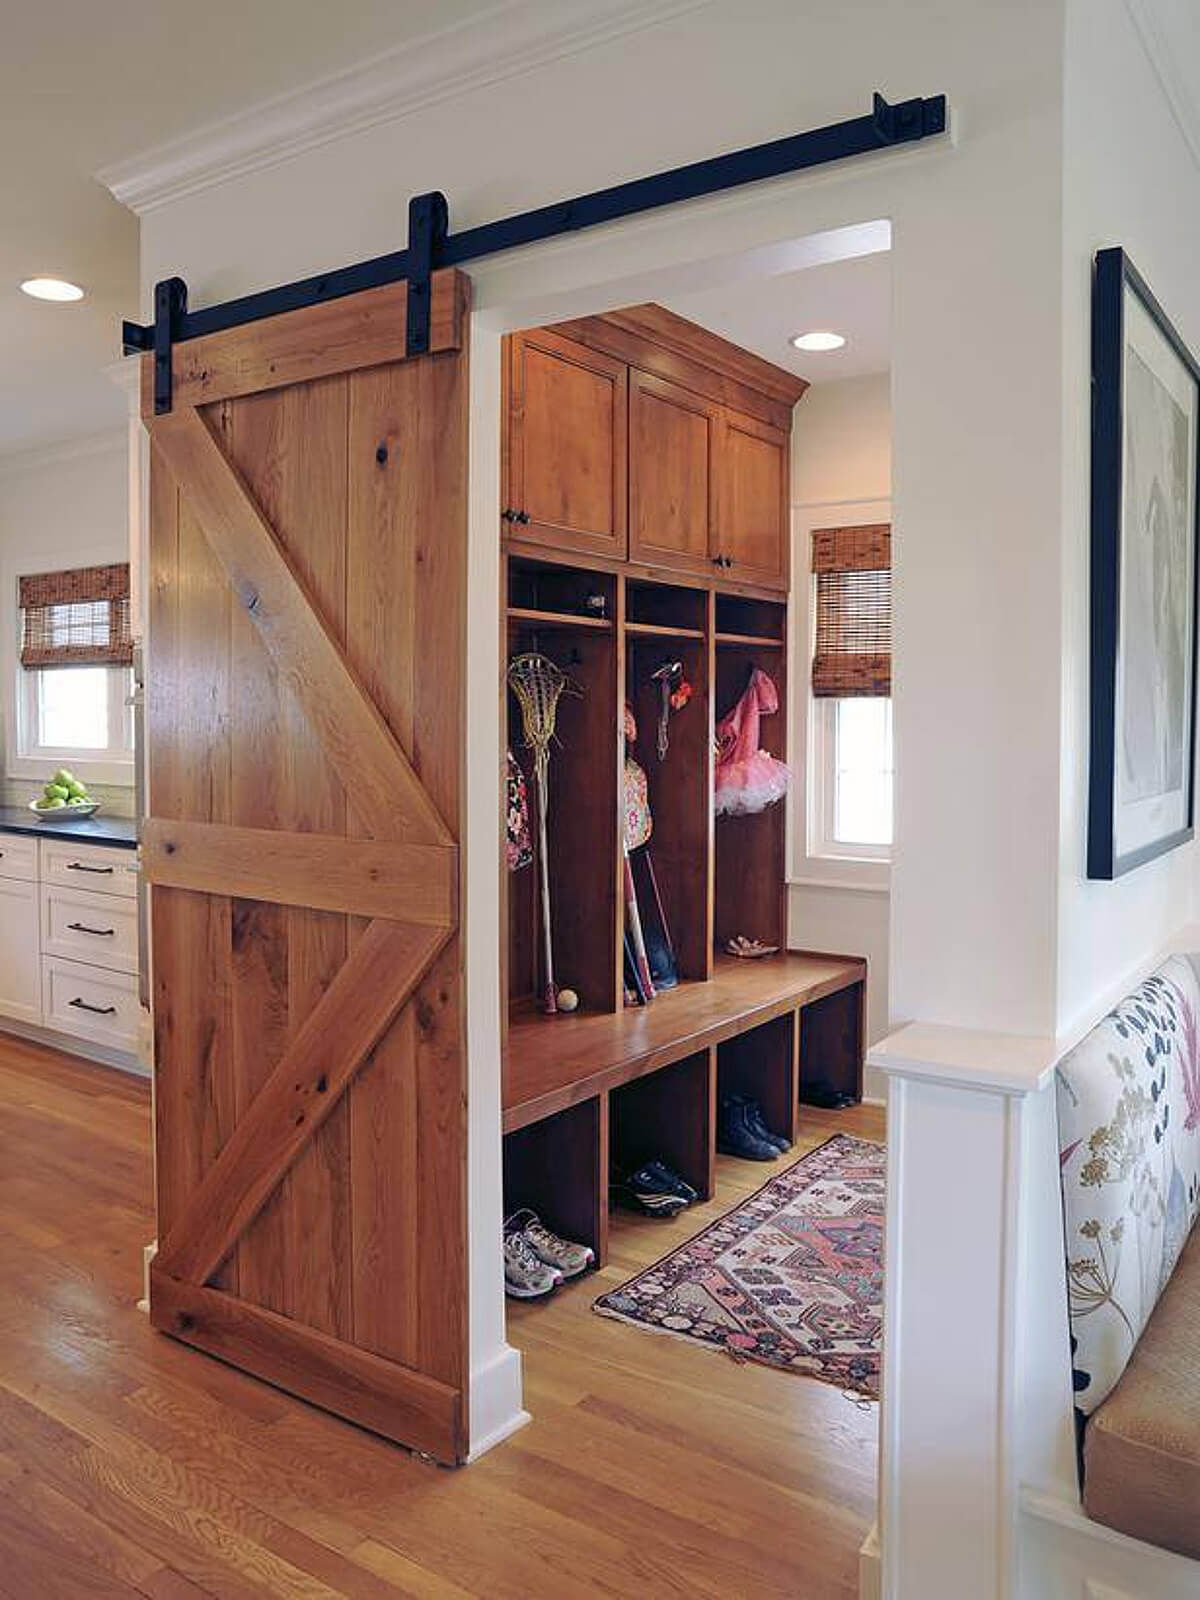 Design Mudroom Ideas 23 best mudroom ideas designs and decorations for 2017 2 wooden barn door rustic feel